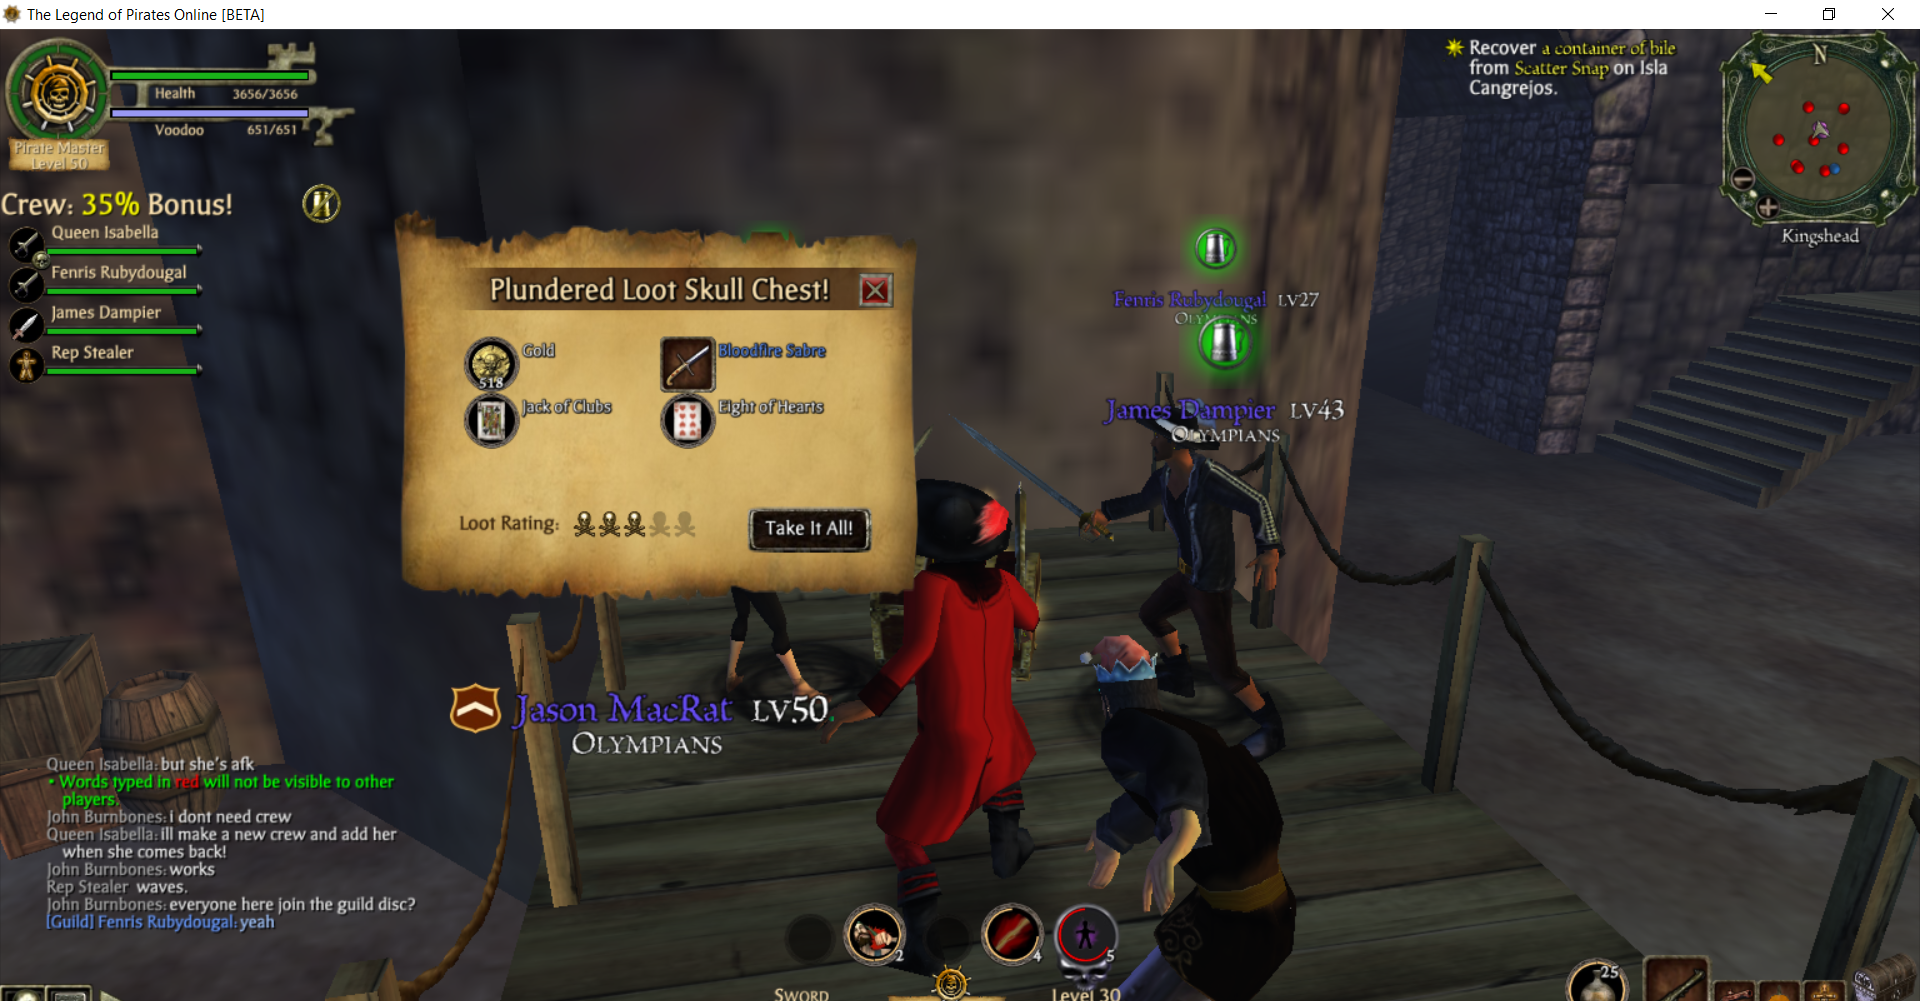 The Legend of Pirates Online [BETA] 11_17_2019 6_36_50 PM.png